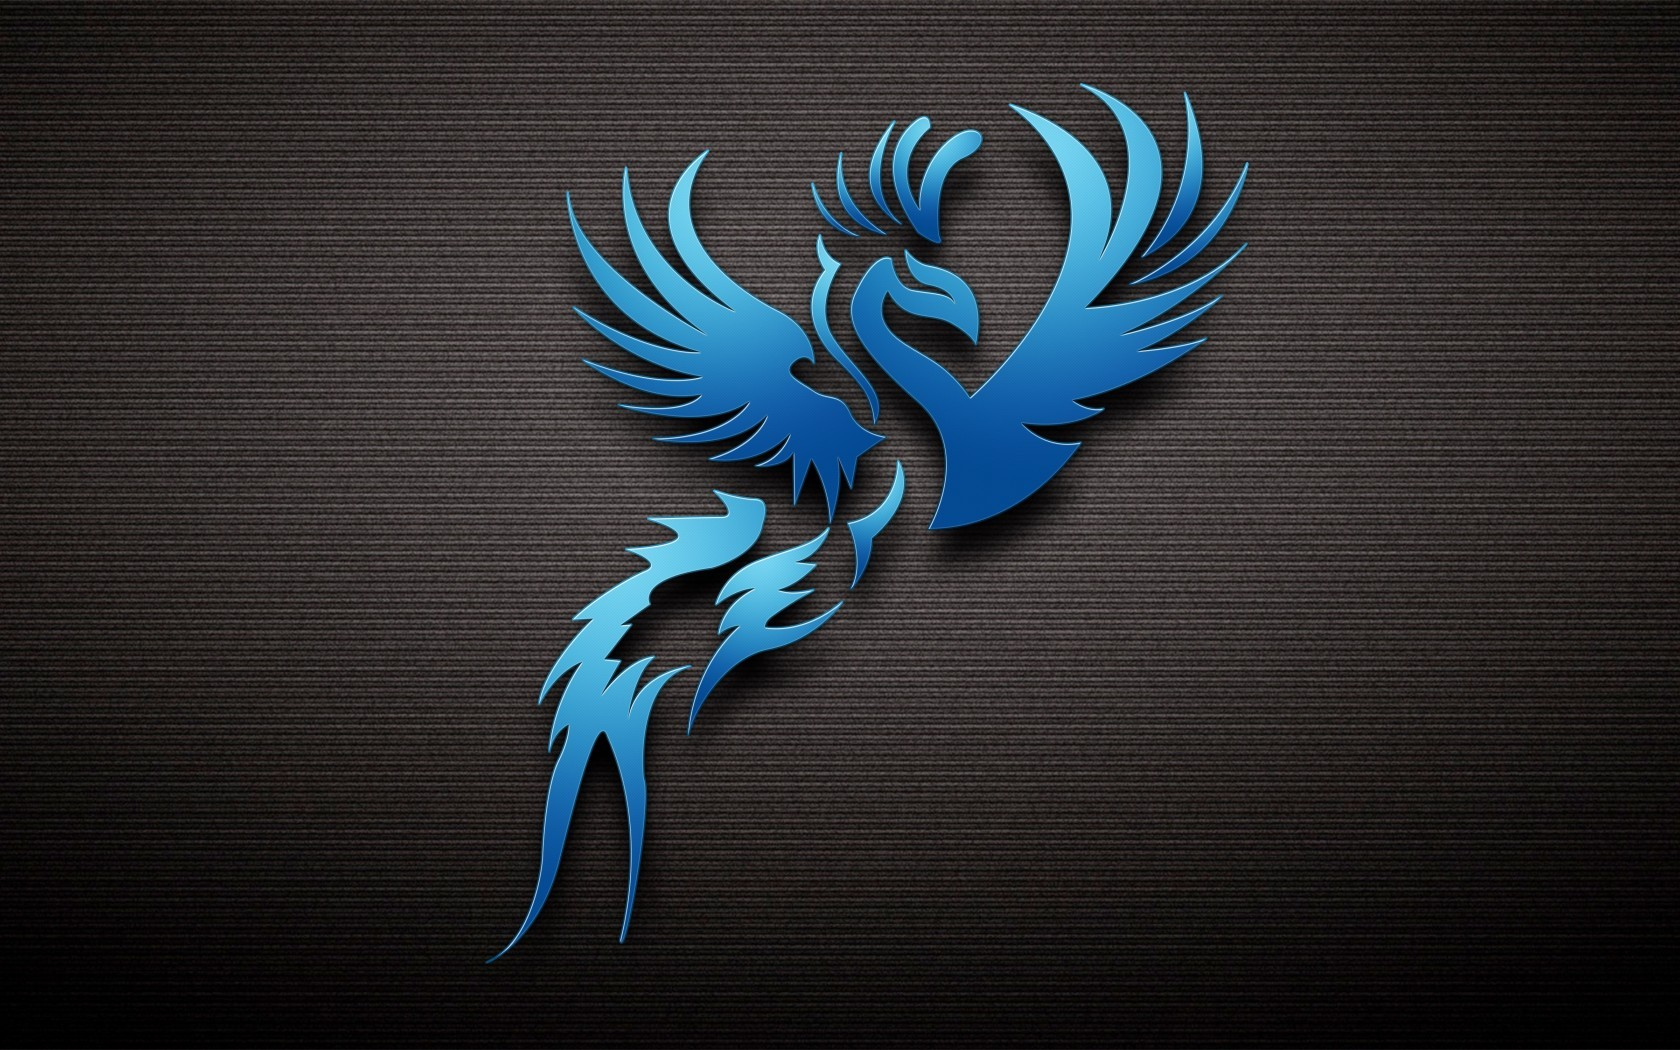 General 1680x1050 phoenix abstract birds simple background blue digital art